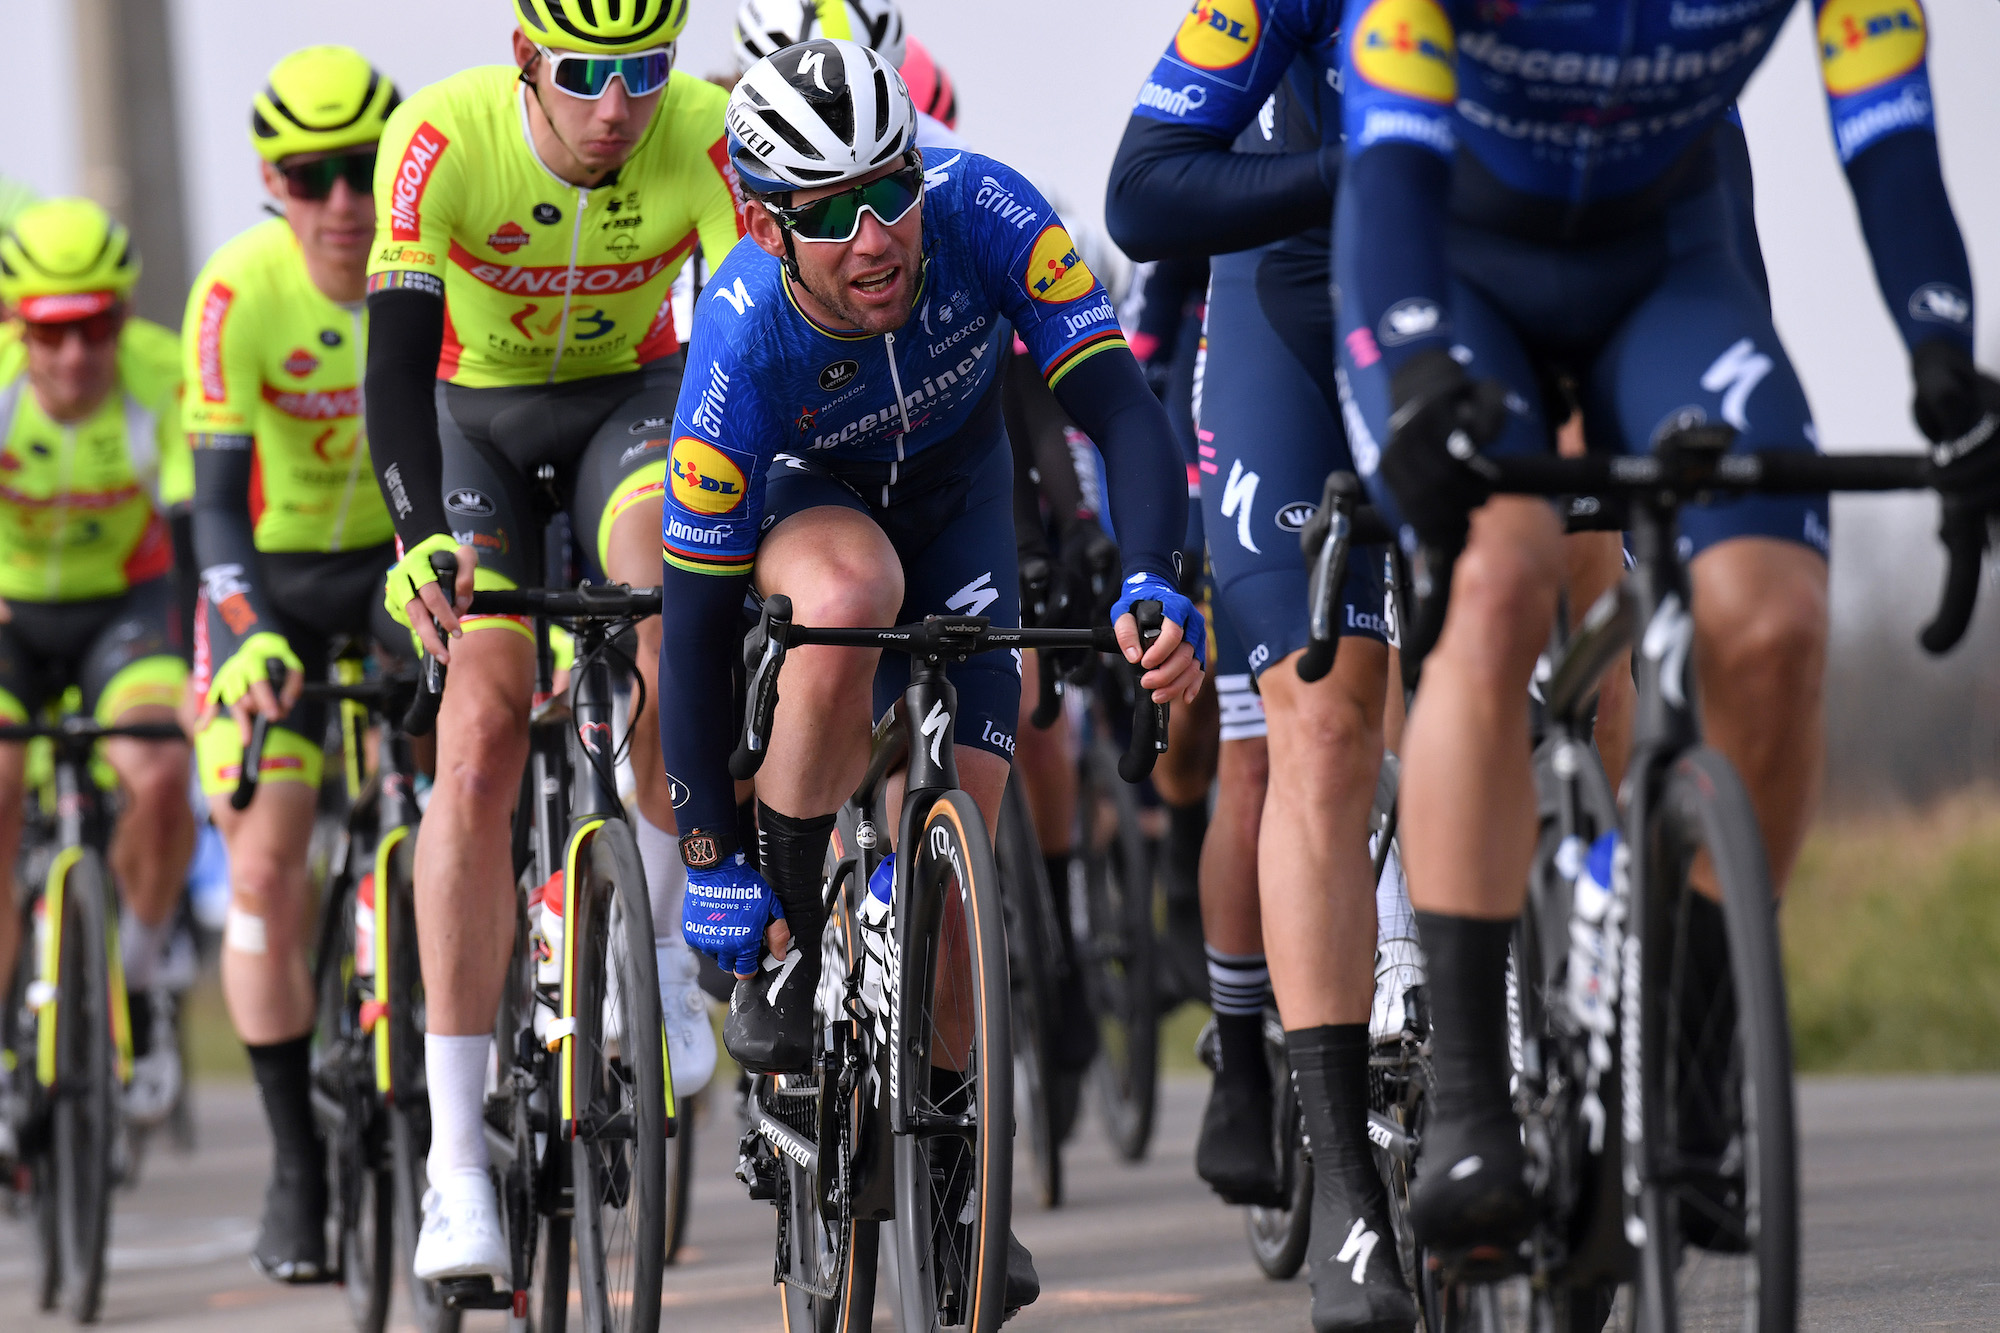 Mark Cavendish is back in action in Belgium after solid second place in last race